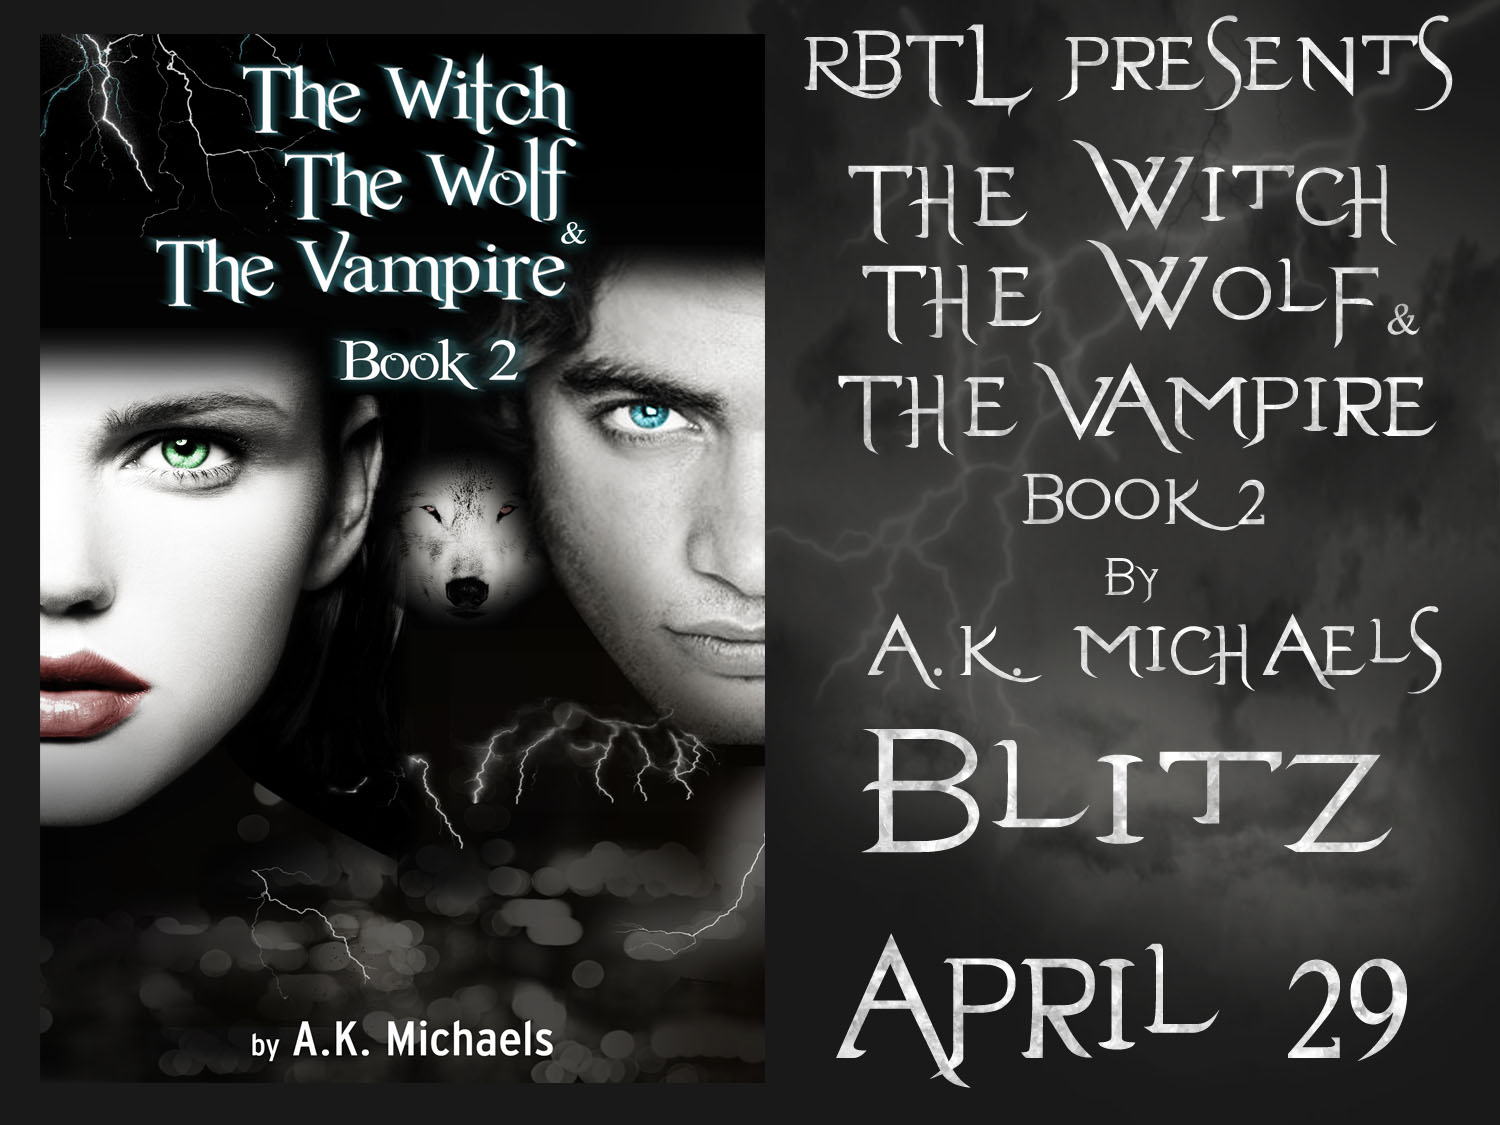 Book Blitz For The Witch, The Wolf, And The Vampire By Ak Michaels